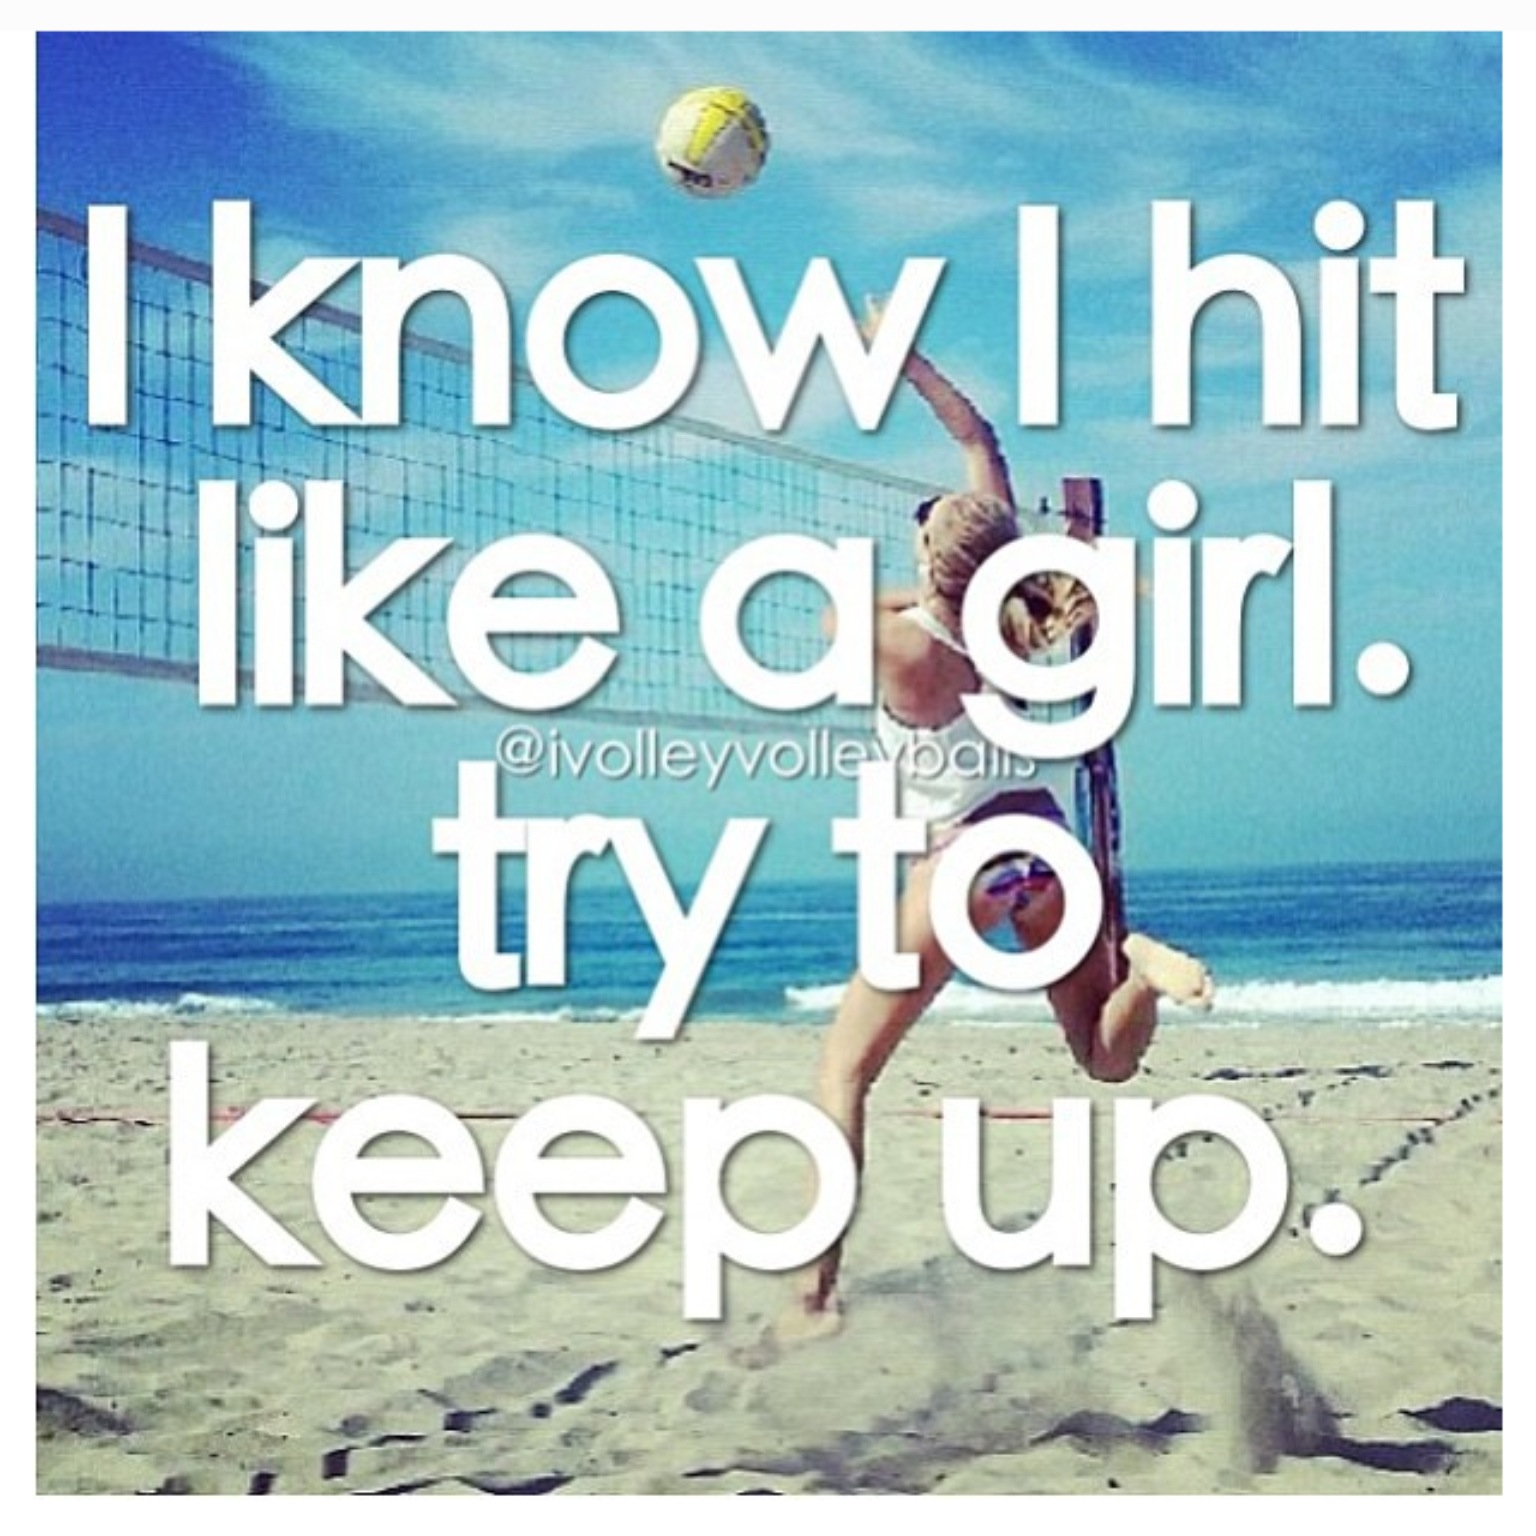 volleyball-quotes-23